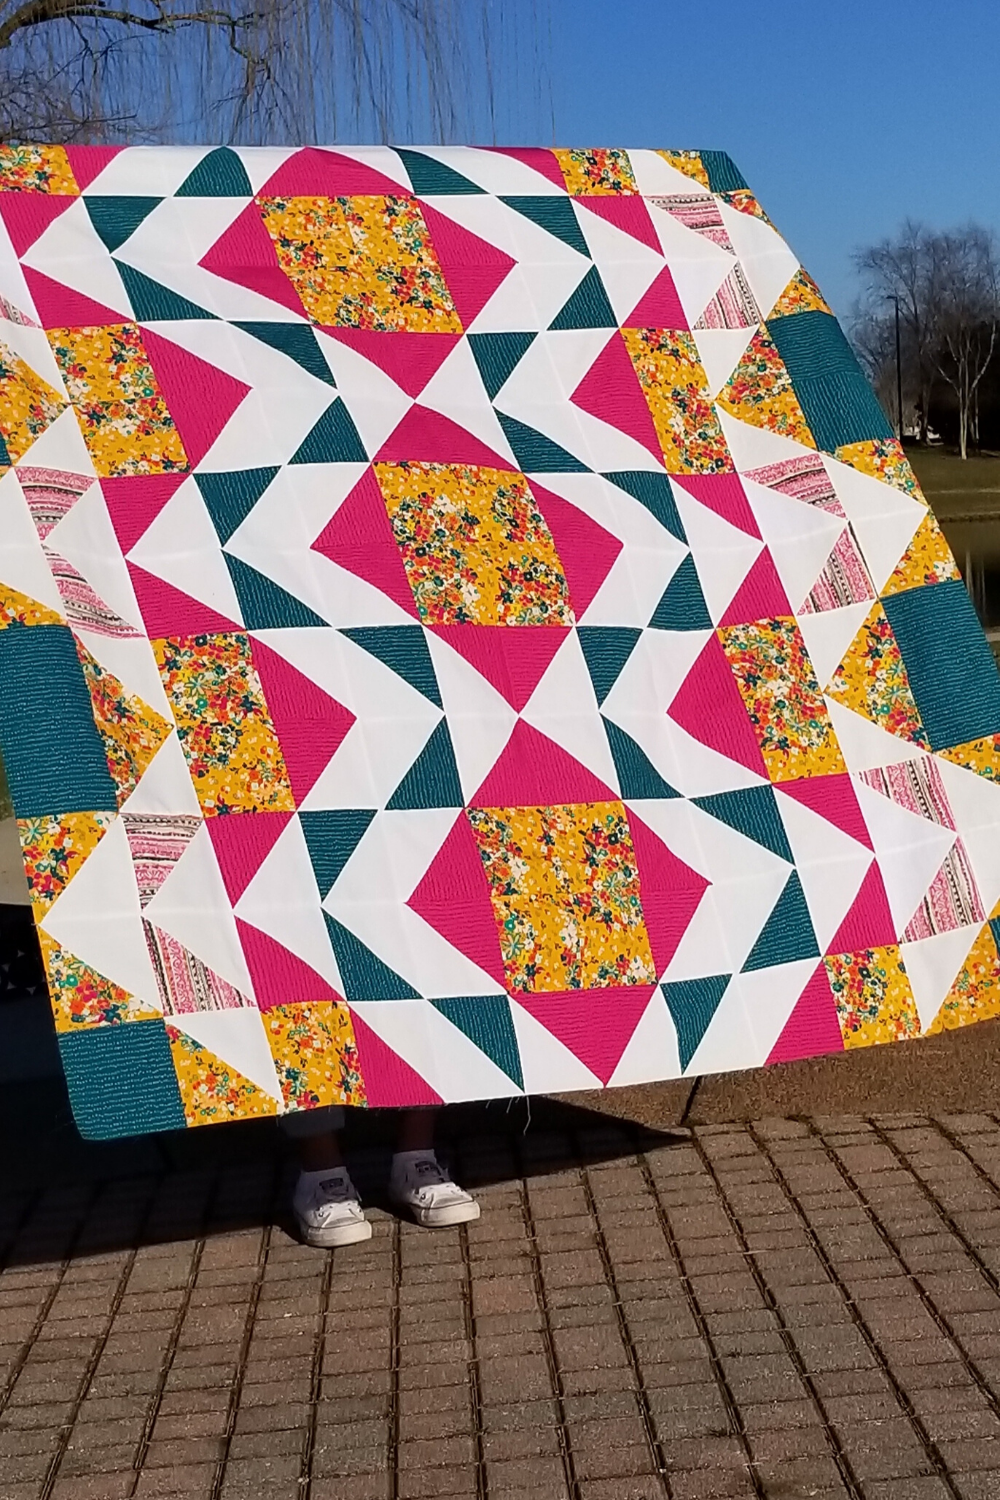 Fuchsia, teal, mustard and white Modern Aztec quilt in the wild - features half square triangles for a quick and easy piecing session | Modern Aztec quilt pattern | Shannon Fraser Designs #modernquilt